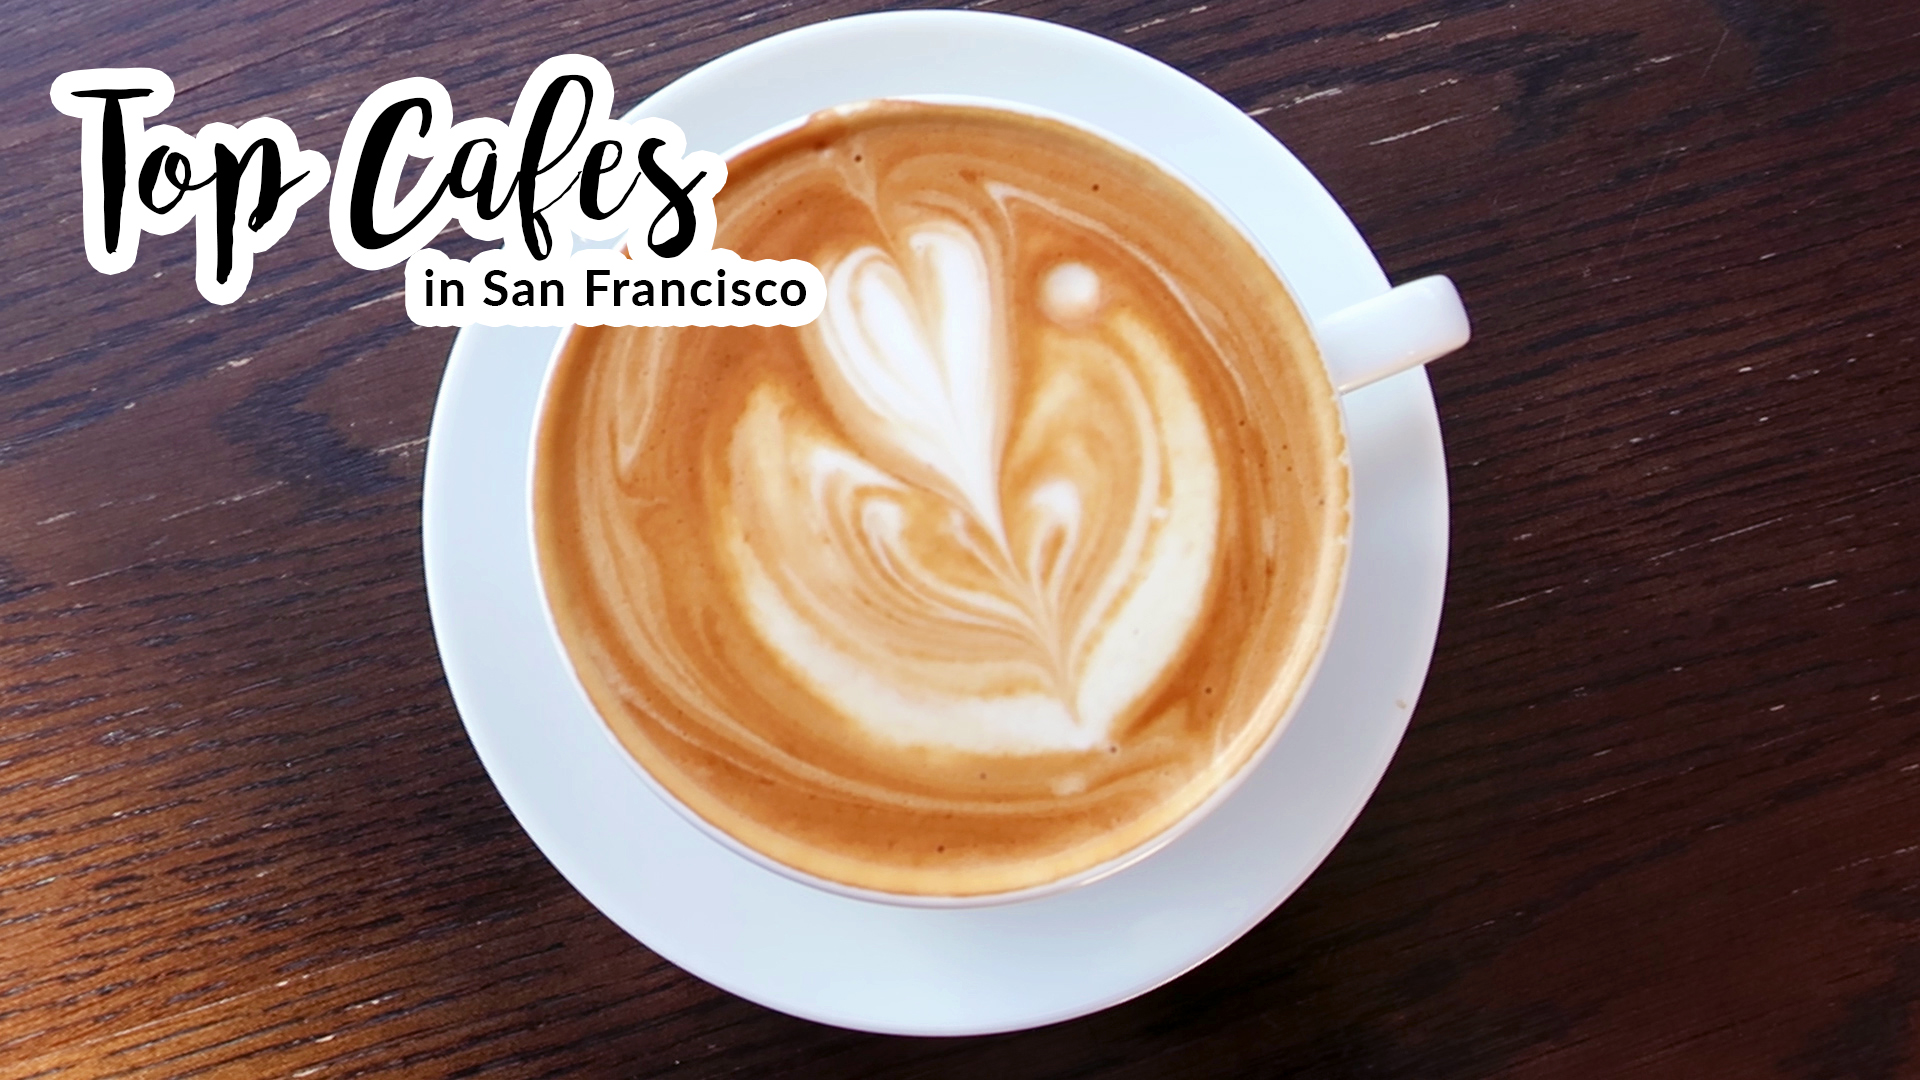 Kaffee Tasse, Latte Art, Top 5 Cafes in San Francisco, Reisetipps, San Francisco, San Francisco Tipps, USA, Reiseblog, Lifestyle, advanceyourstyle